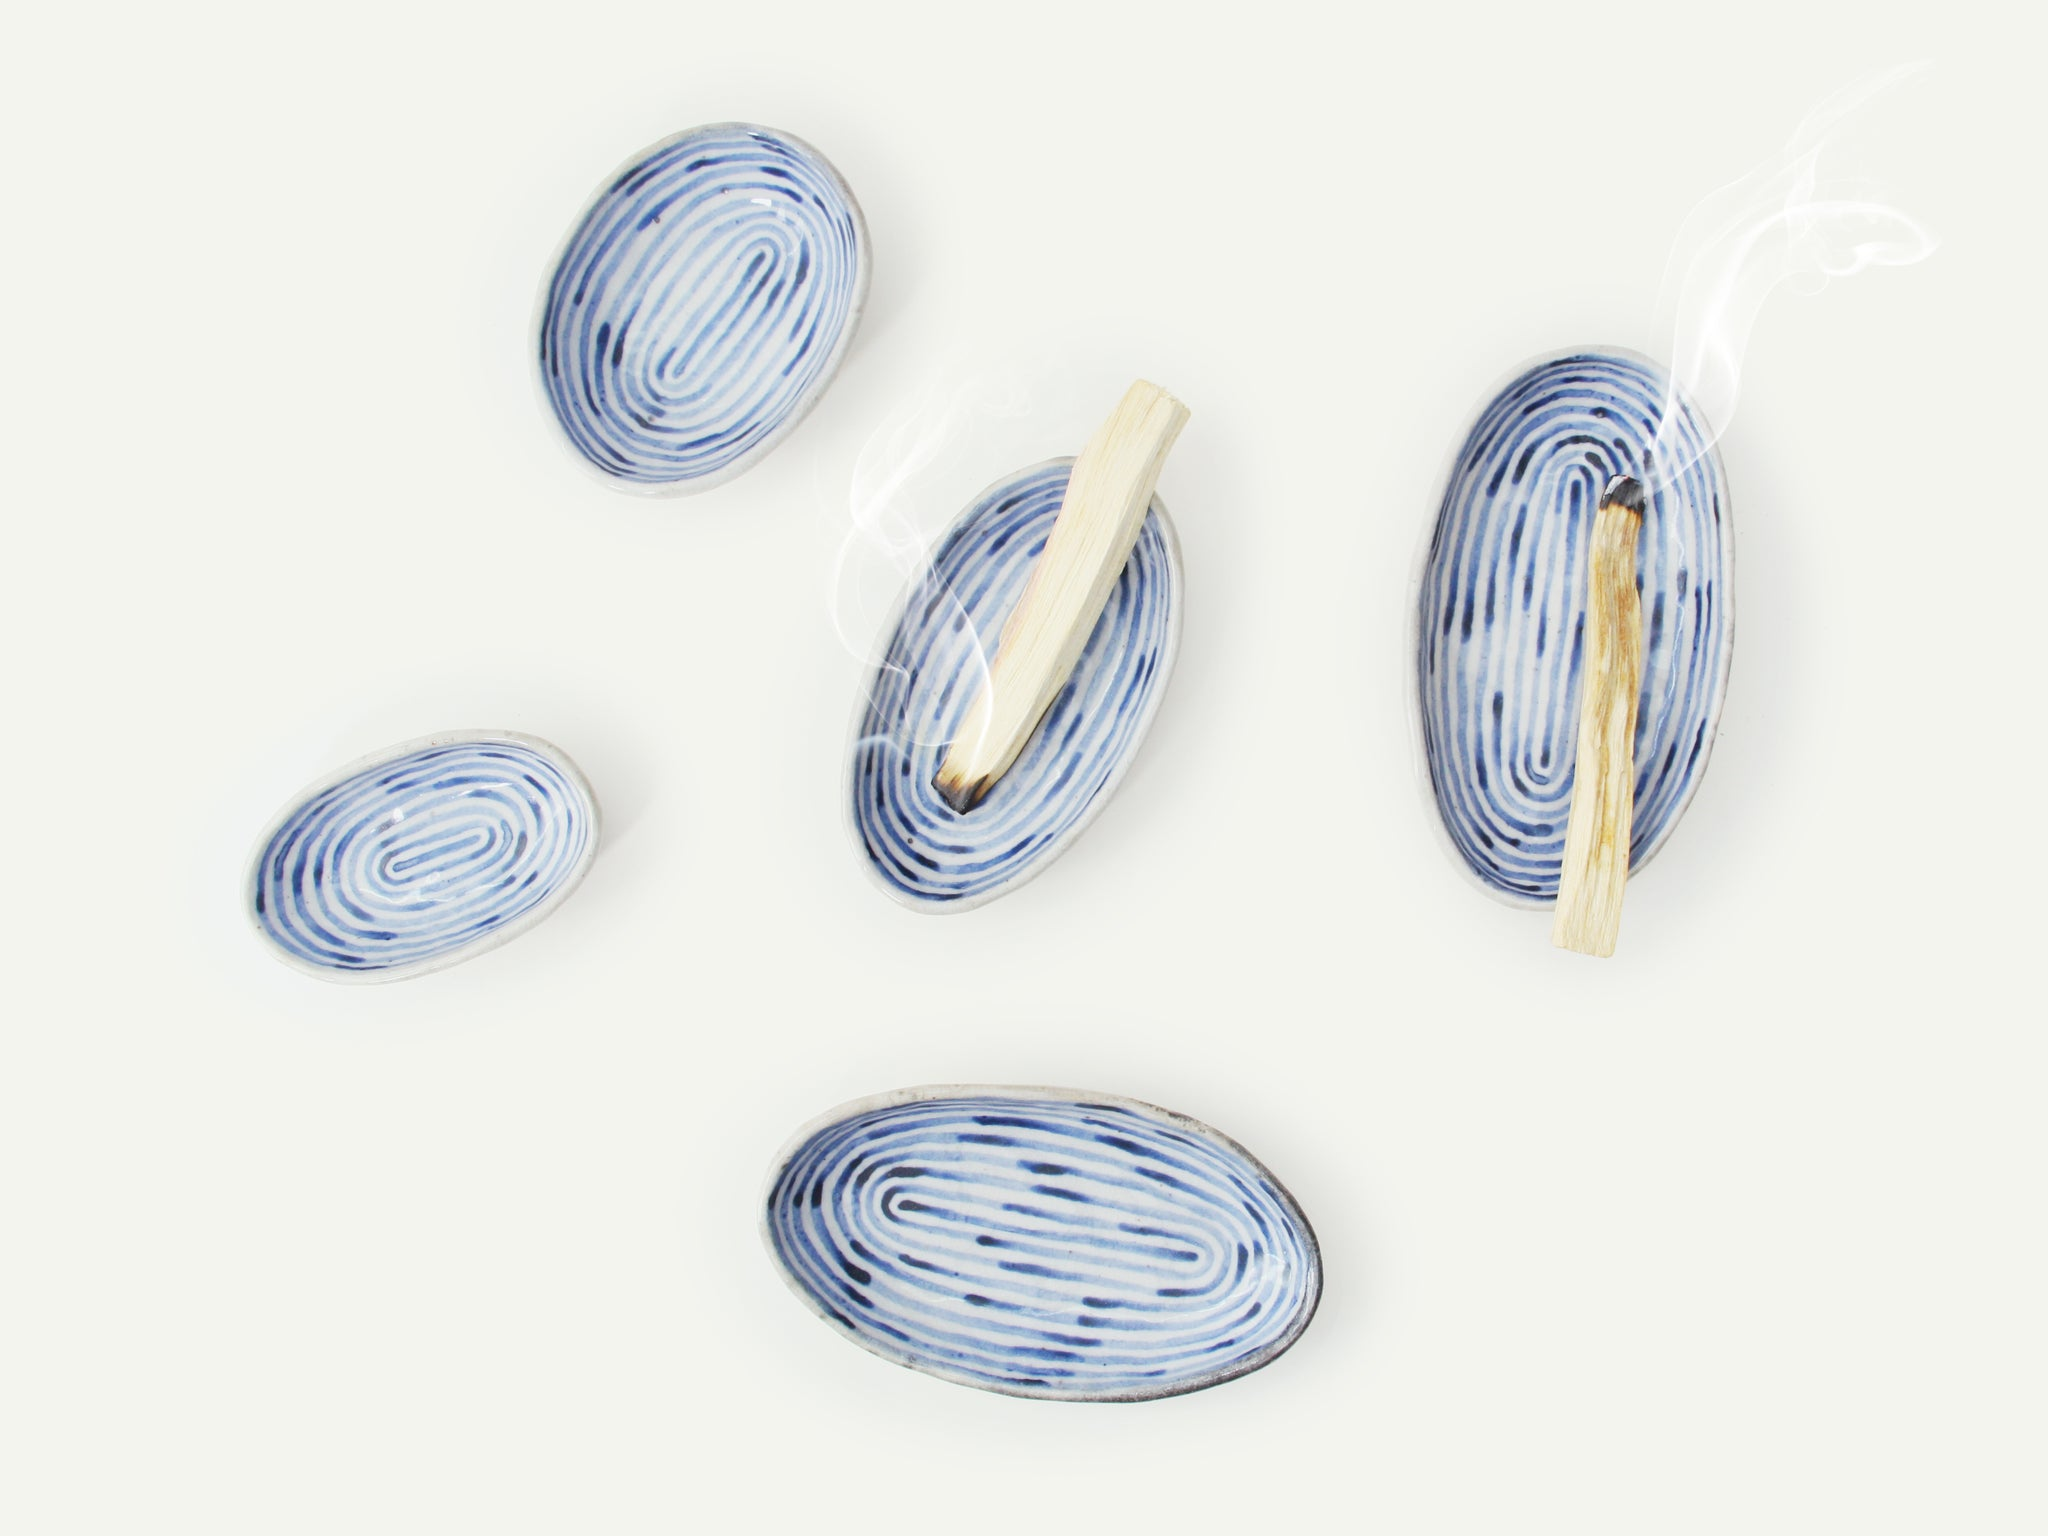 Indigo Blue Ceramic Oval Dish